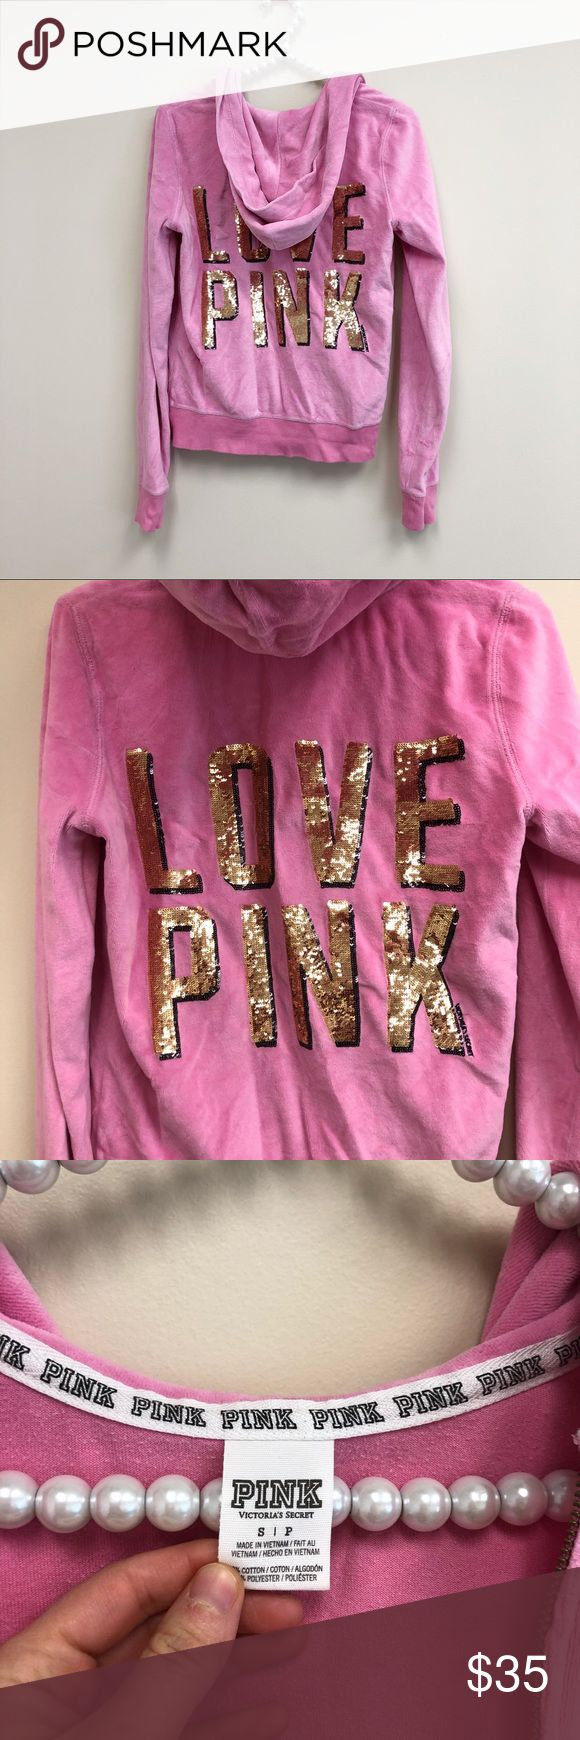 Victoria's Secret PINK Sequin Gold Zip Up Hoodie Excellent condition with little to no wear and tons of life left. Same day/next day shipping. Pet free/smoke free home. NO TRADES PLEASE PINK Victoria's Secret Sweaters